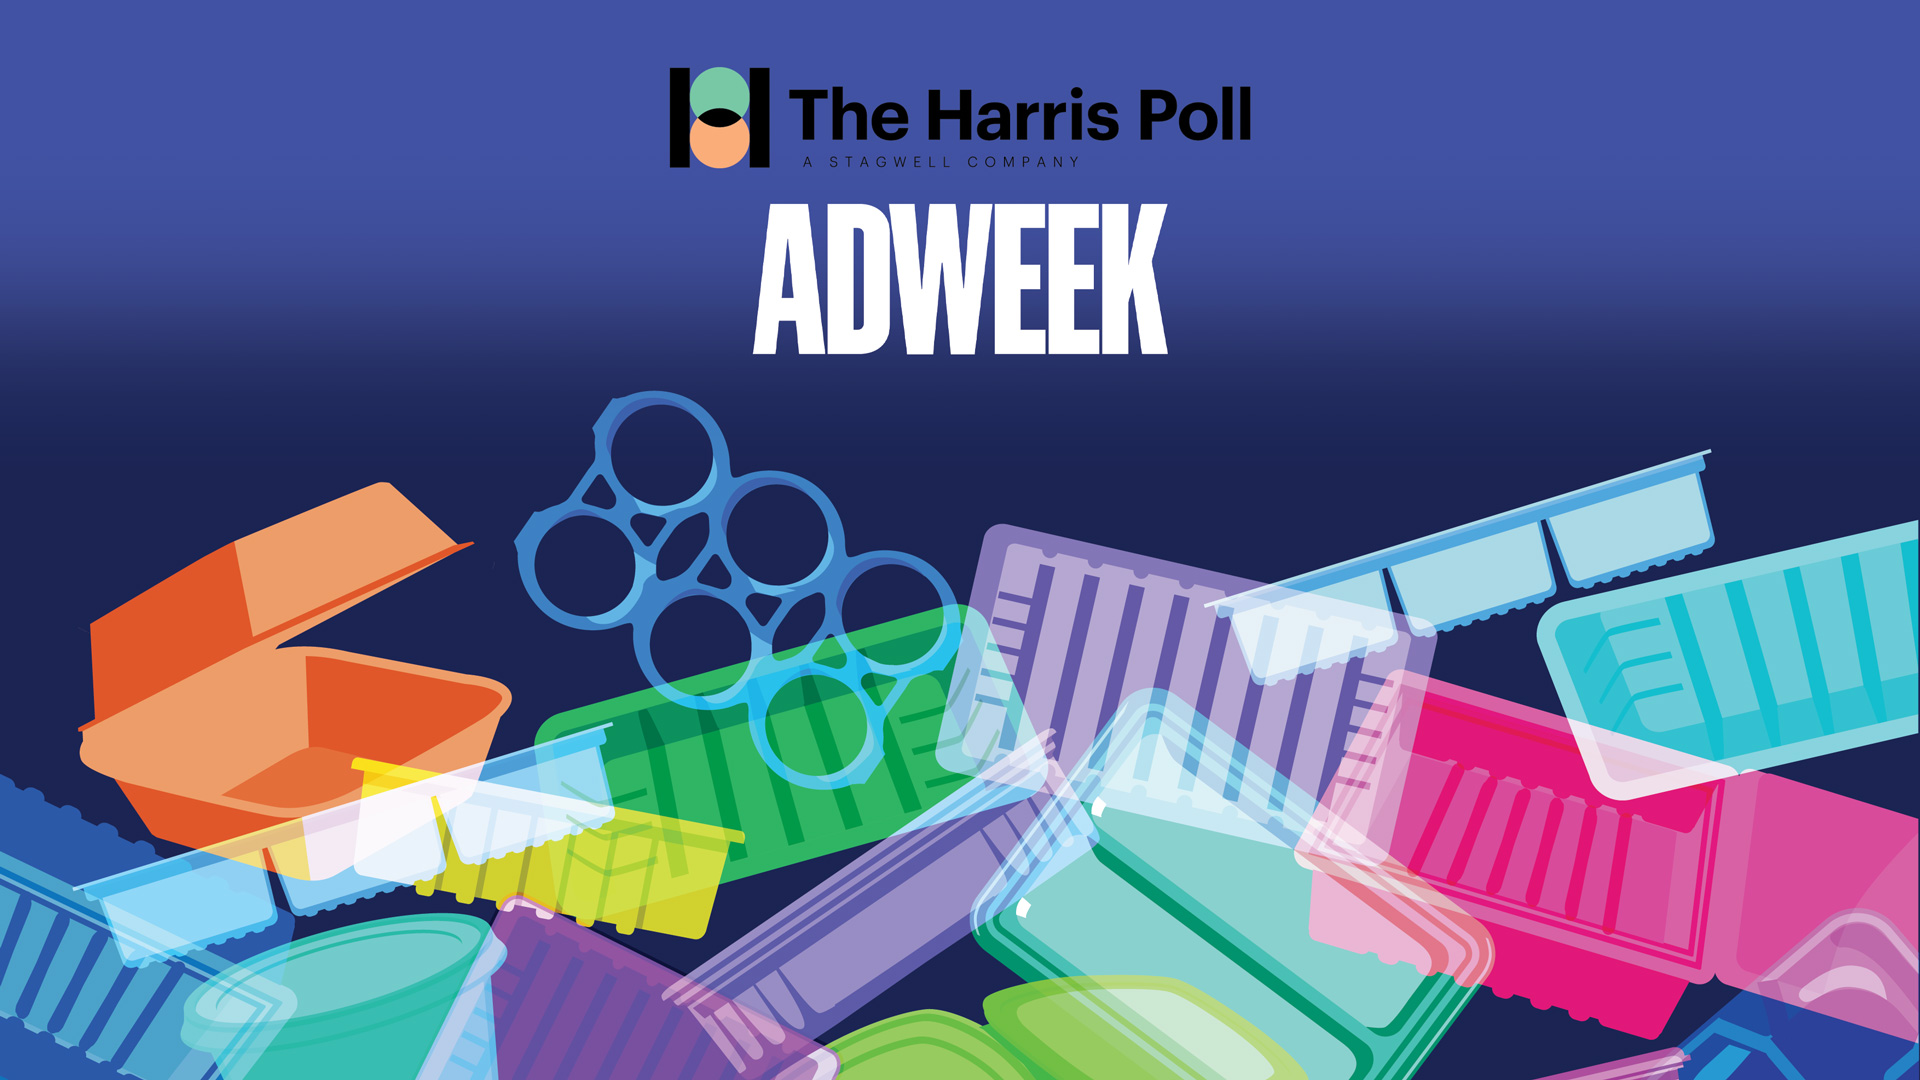 Illustration of single-use products with The Harris Poll and Adweek logos on top